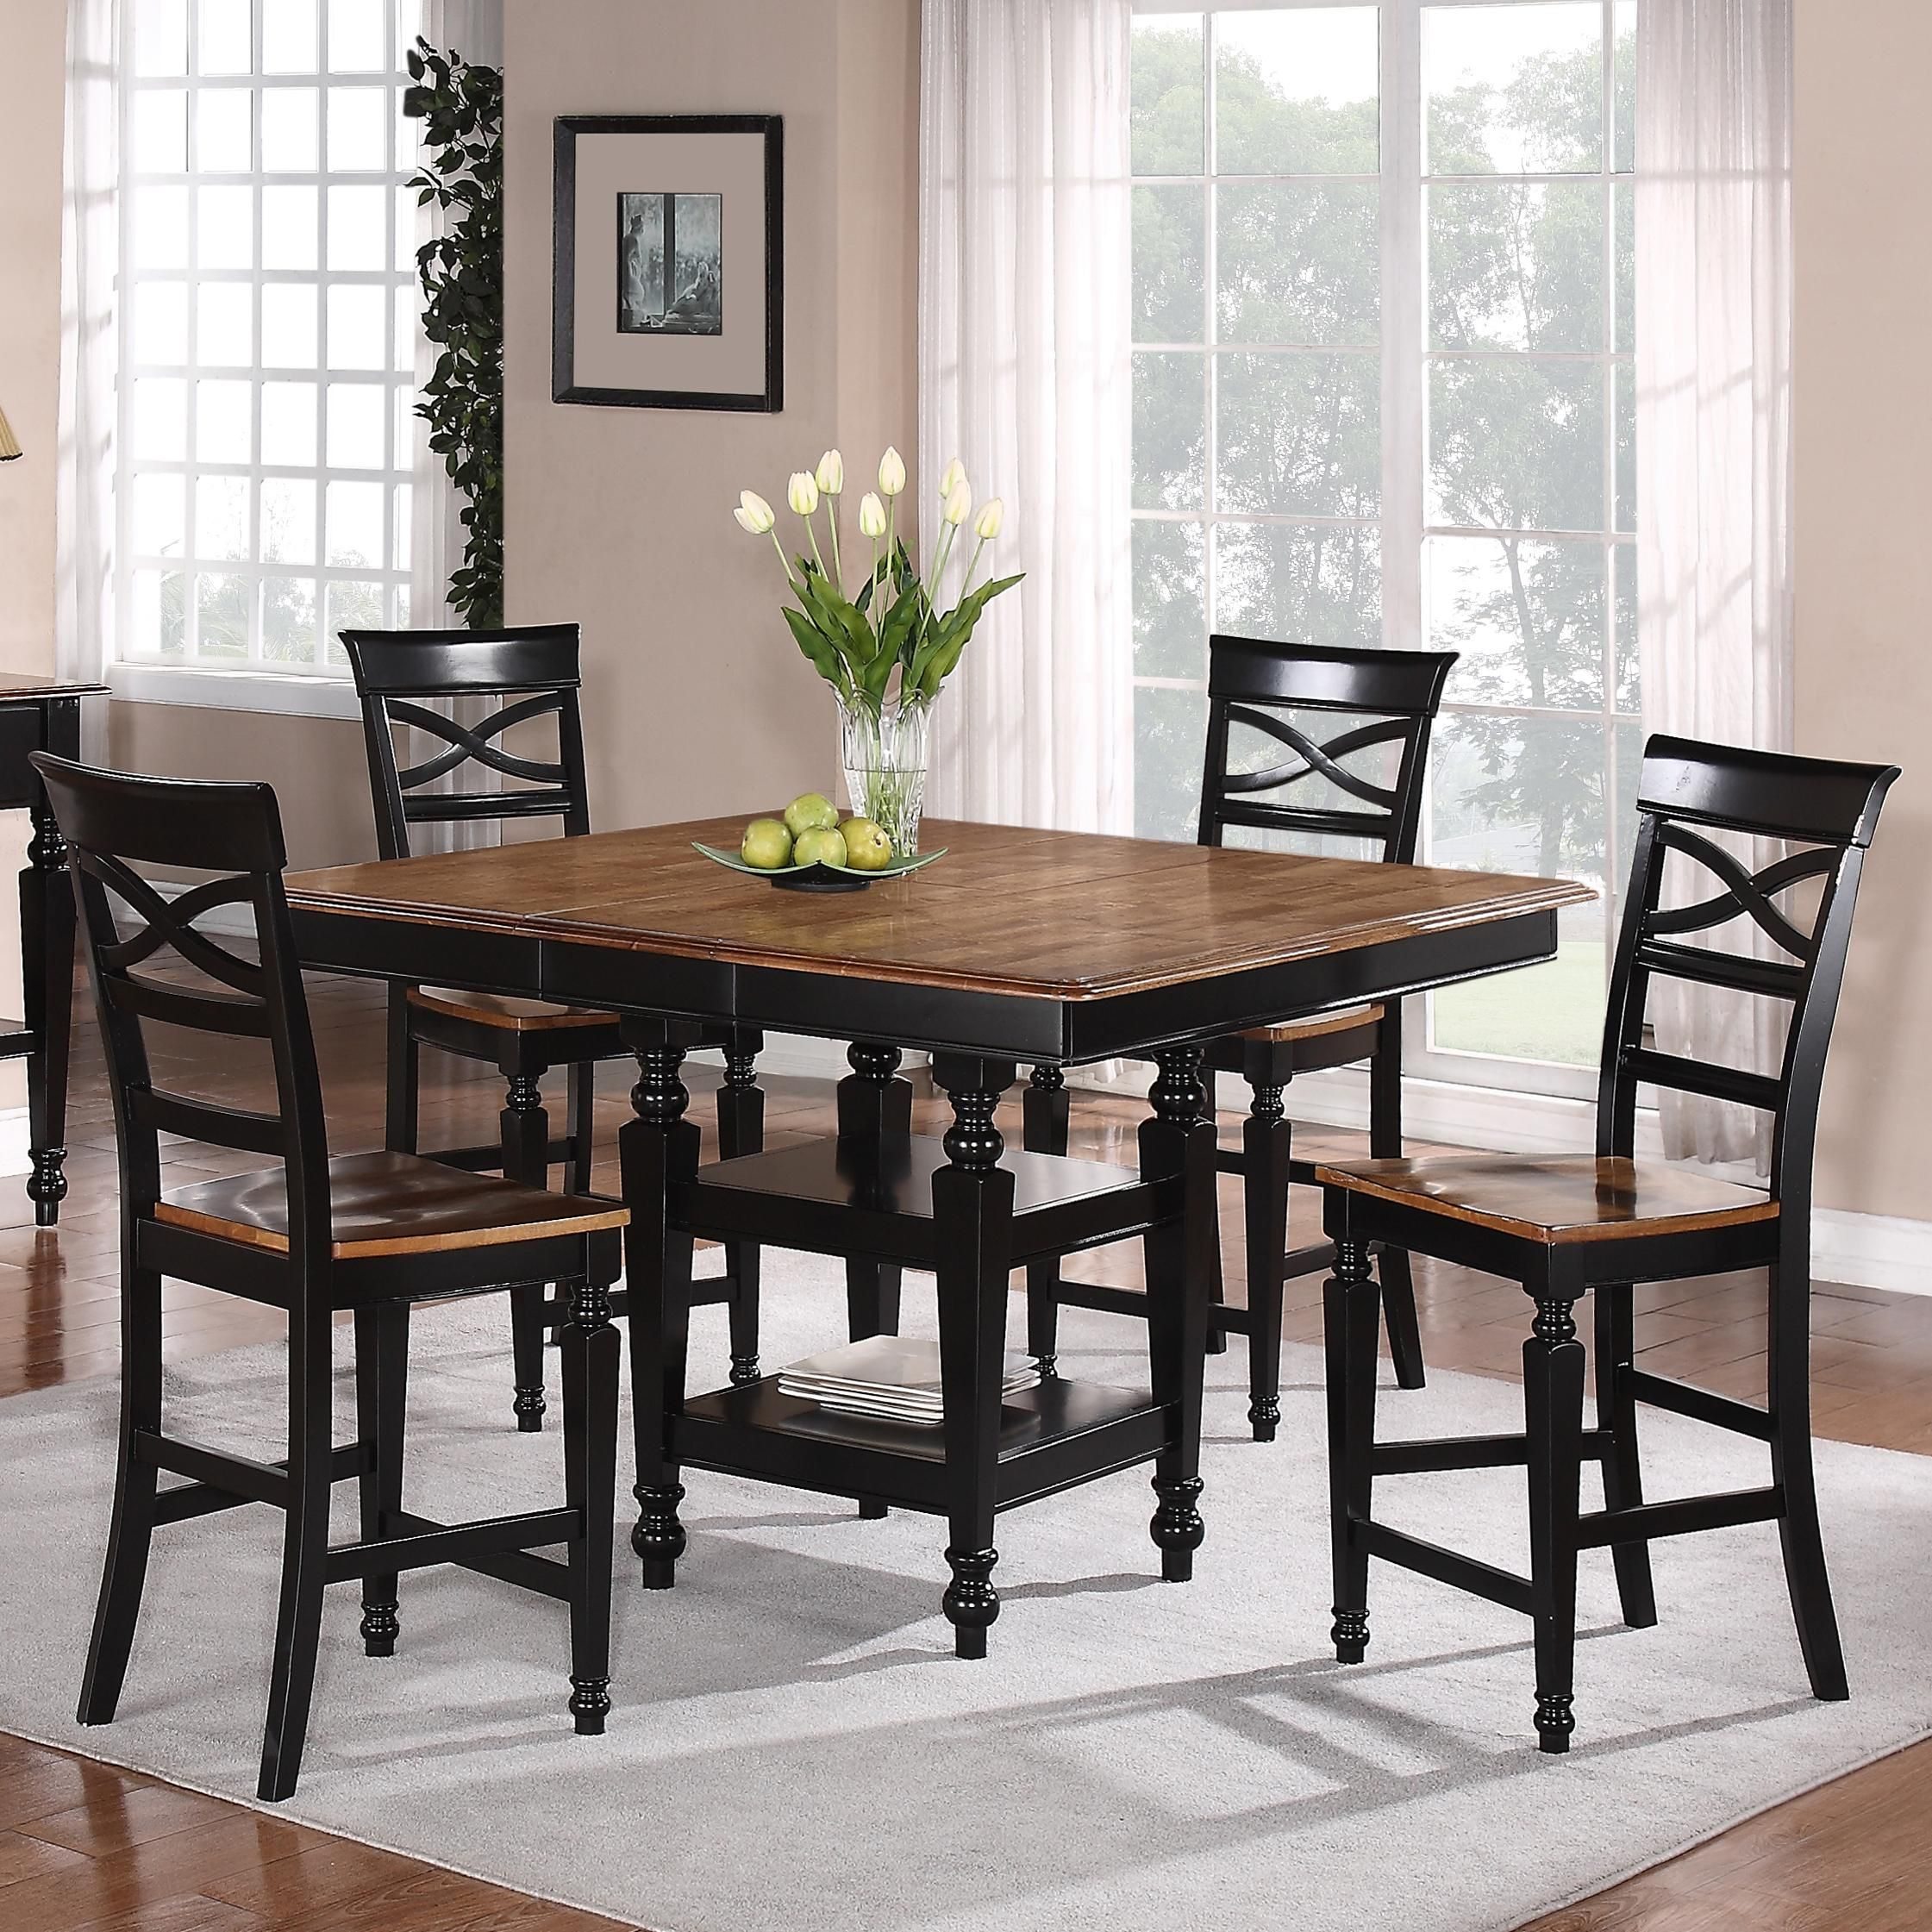 Amelia Amelia Counter Height 5 Pc Dining Set By Holland House